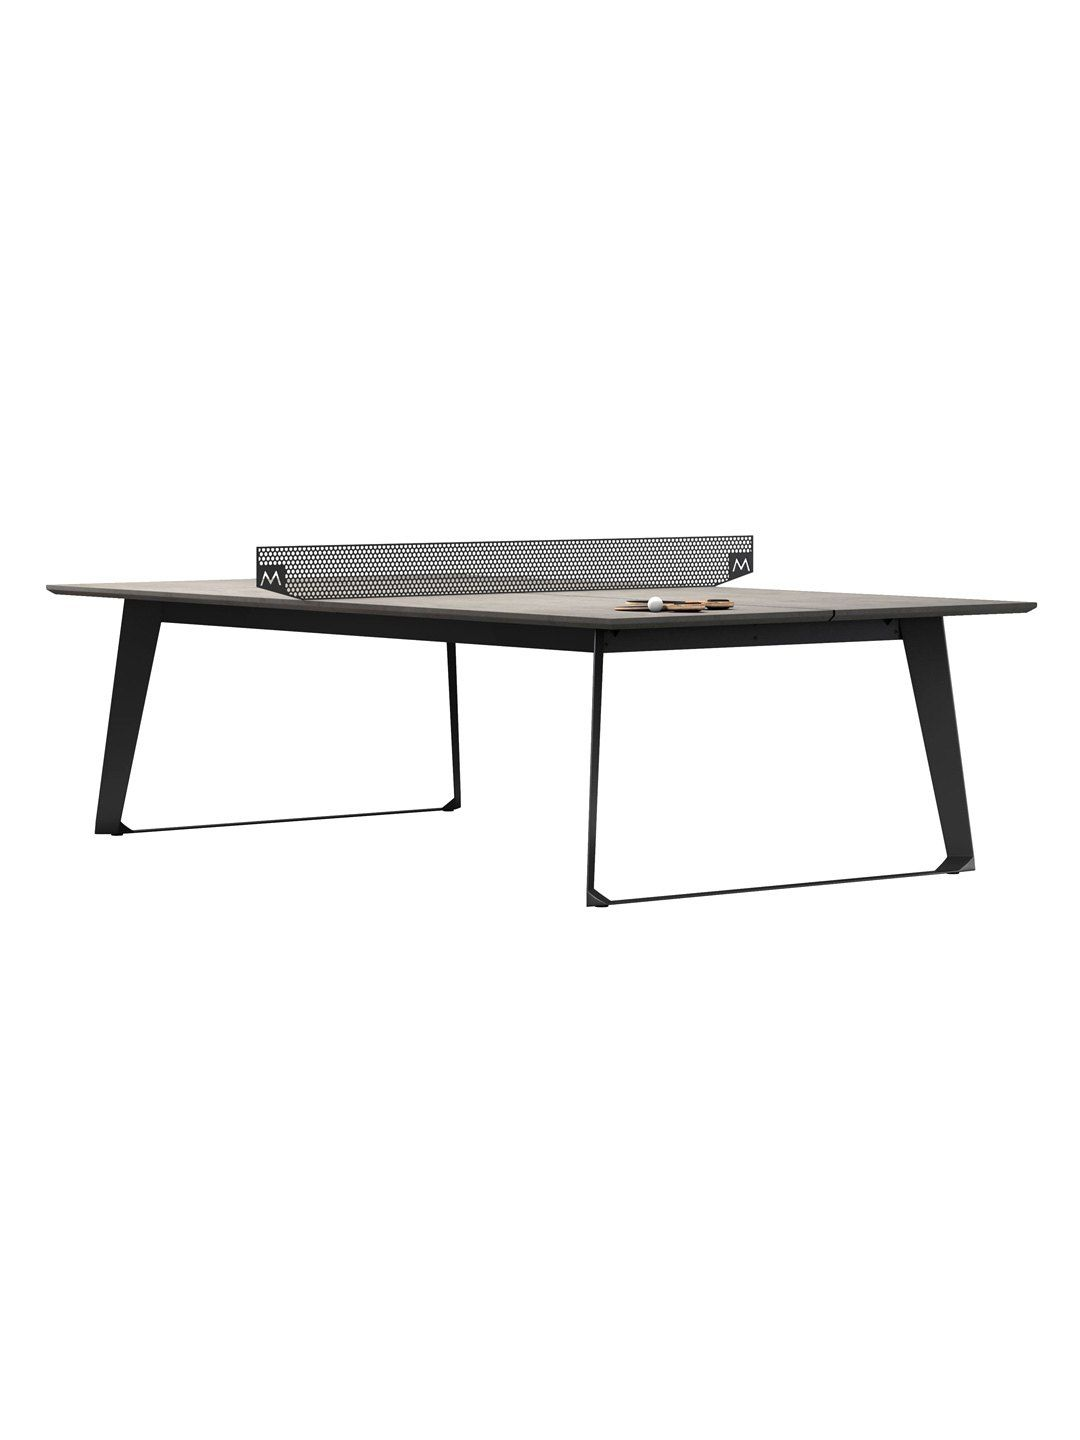 Amsterdam indoor outdoor ping pong dining table by modloft gray concrete gilt